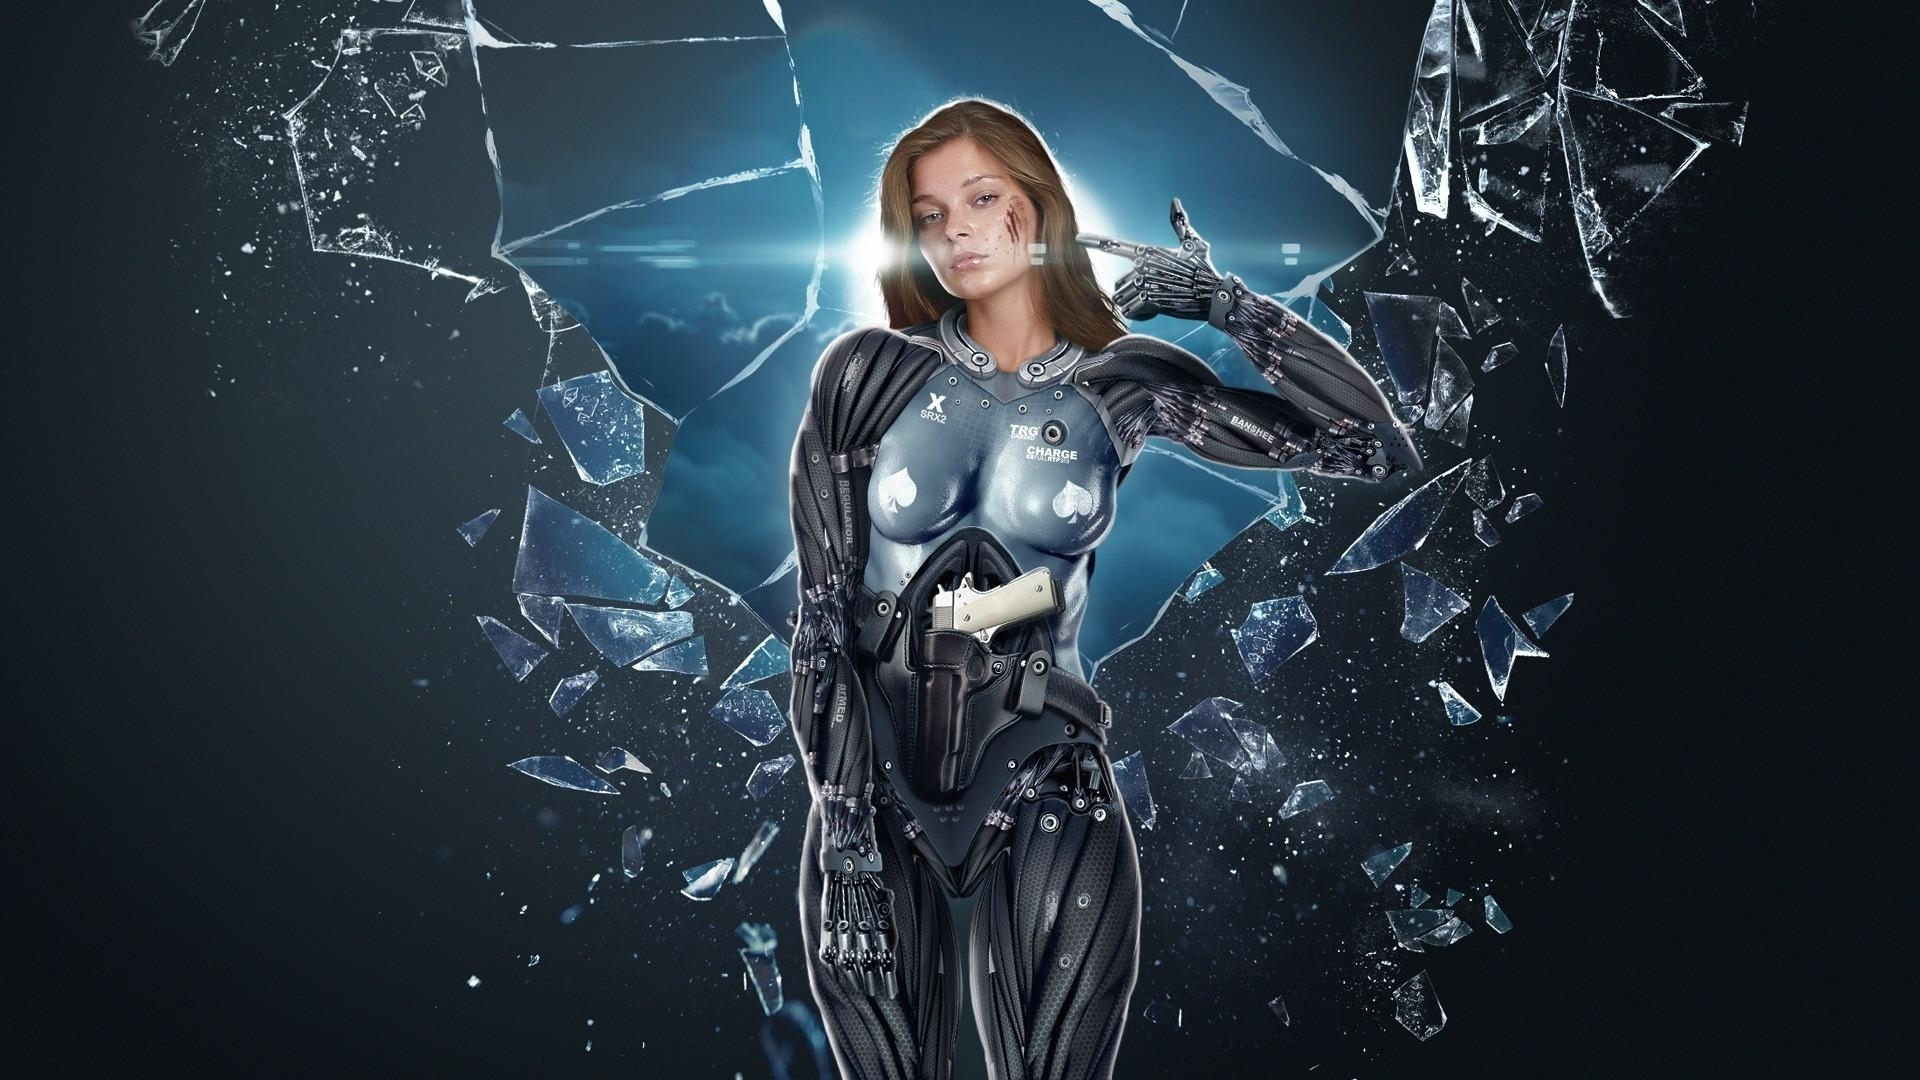 girl-cyborg-glass-shards-fall-1920x1080